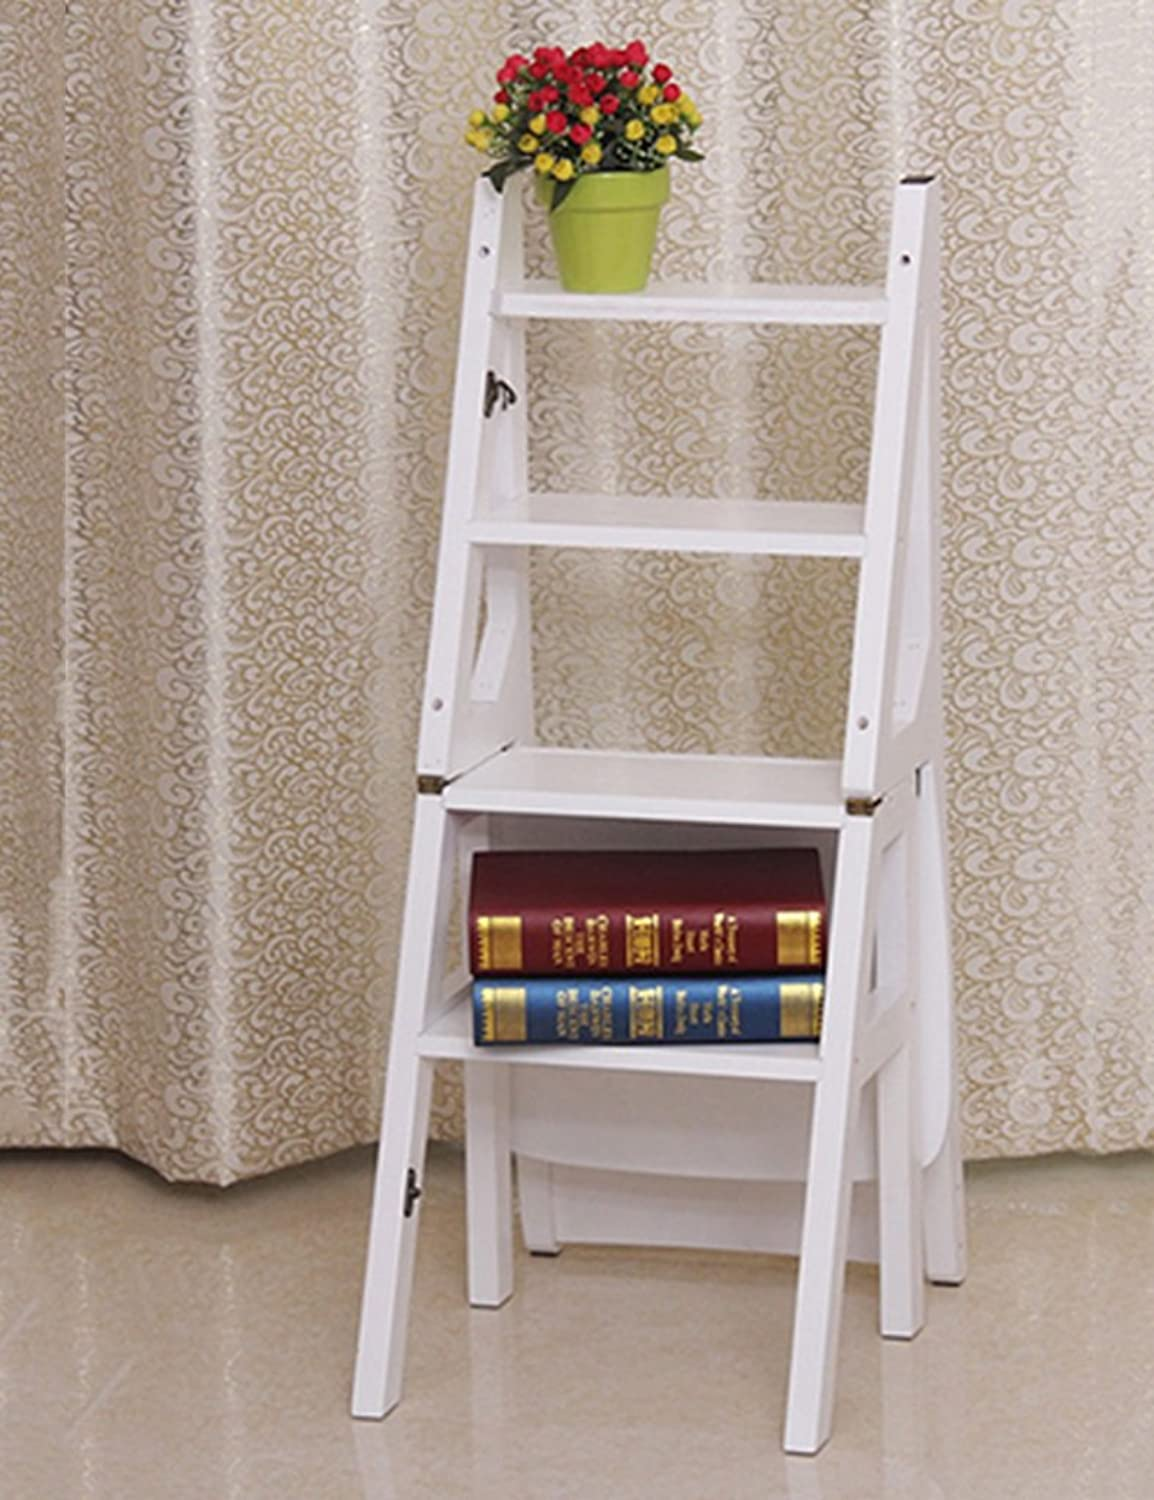 KLEDDP Solid Wood Folding Ladder Chair Home Multi-function Step Stool 4 Layer Dual-purpose Multi-function Staircase Ladder Steps Step stool (color   D)